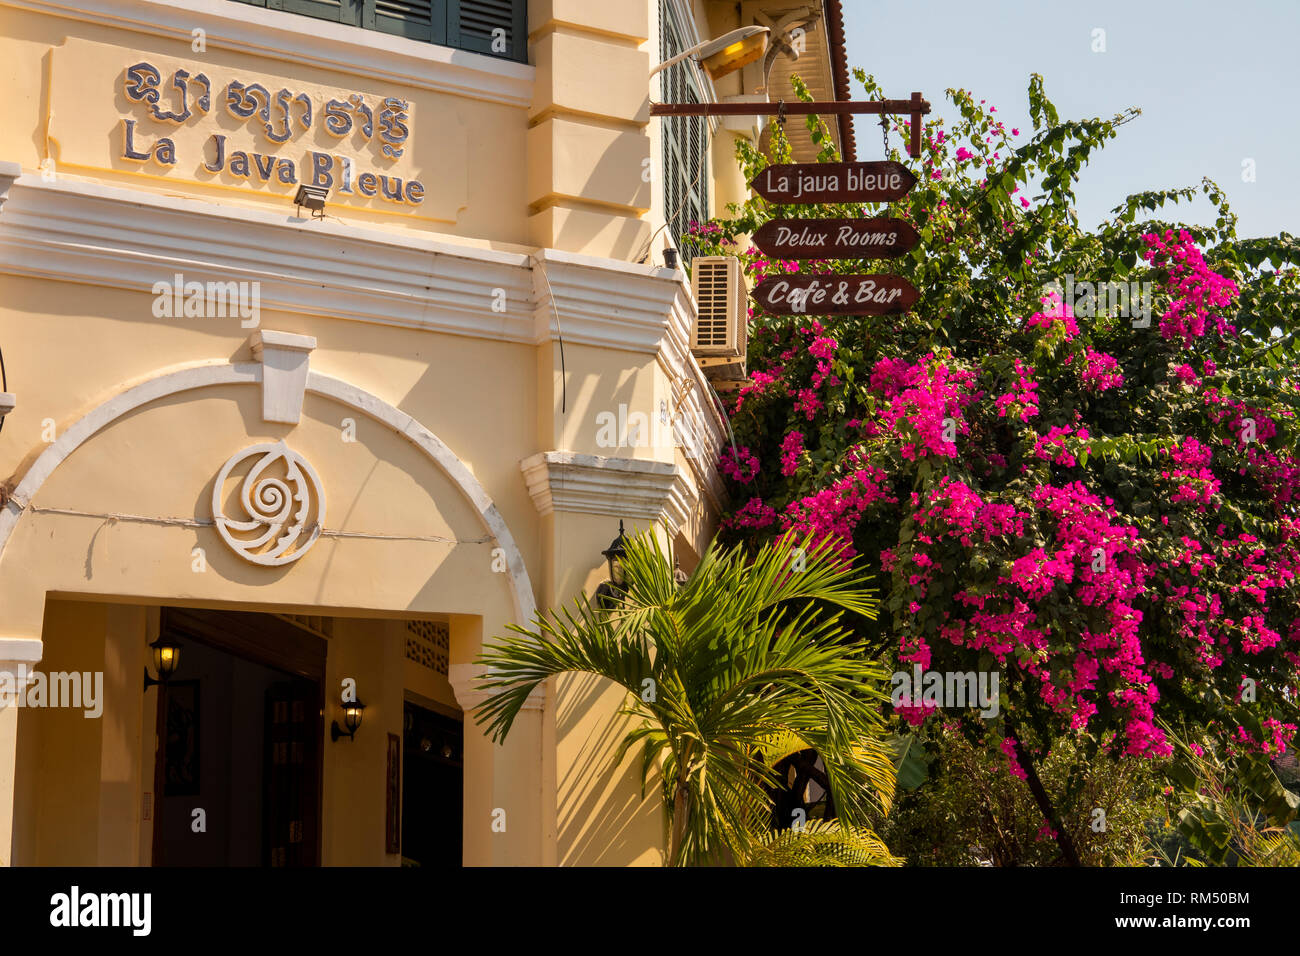 Cambodia, Kampot Province, Kampot city, La Java Bleue, heritage hotel in restored old French Colonial Building, architectural detail - Stock Image